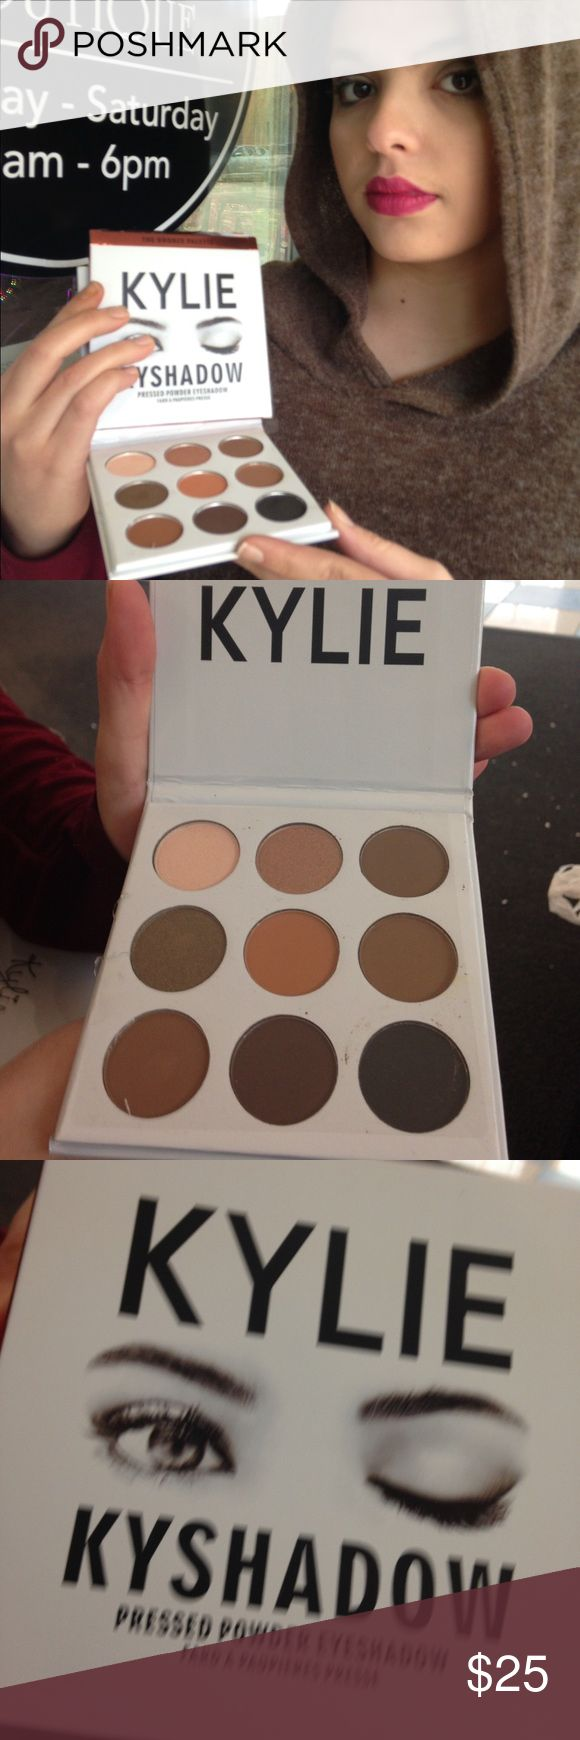 Kylie Kenner eyeshadow pallet 9 colors Brand New 1st photo my daughter is wearing her Kylie Jenner lip and eyeshadow all brand new the colors are fabulous and go on smooth and stay on these cosmetics where gifted from a friend in a LA I'm selling as a No Name Ai cannot verify but I can 100% say they are great they go on real nice and stay ok the price is awesome all brand new sorry no trades price is form these are brand new most neutral colors so you can even use to contour if you like my…